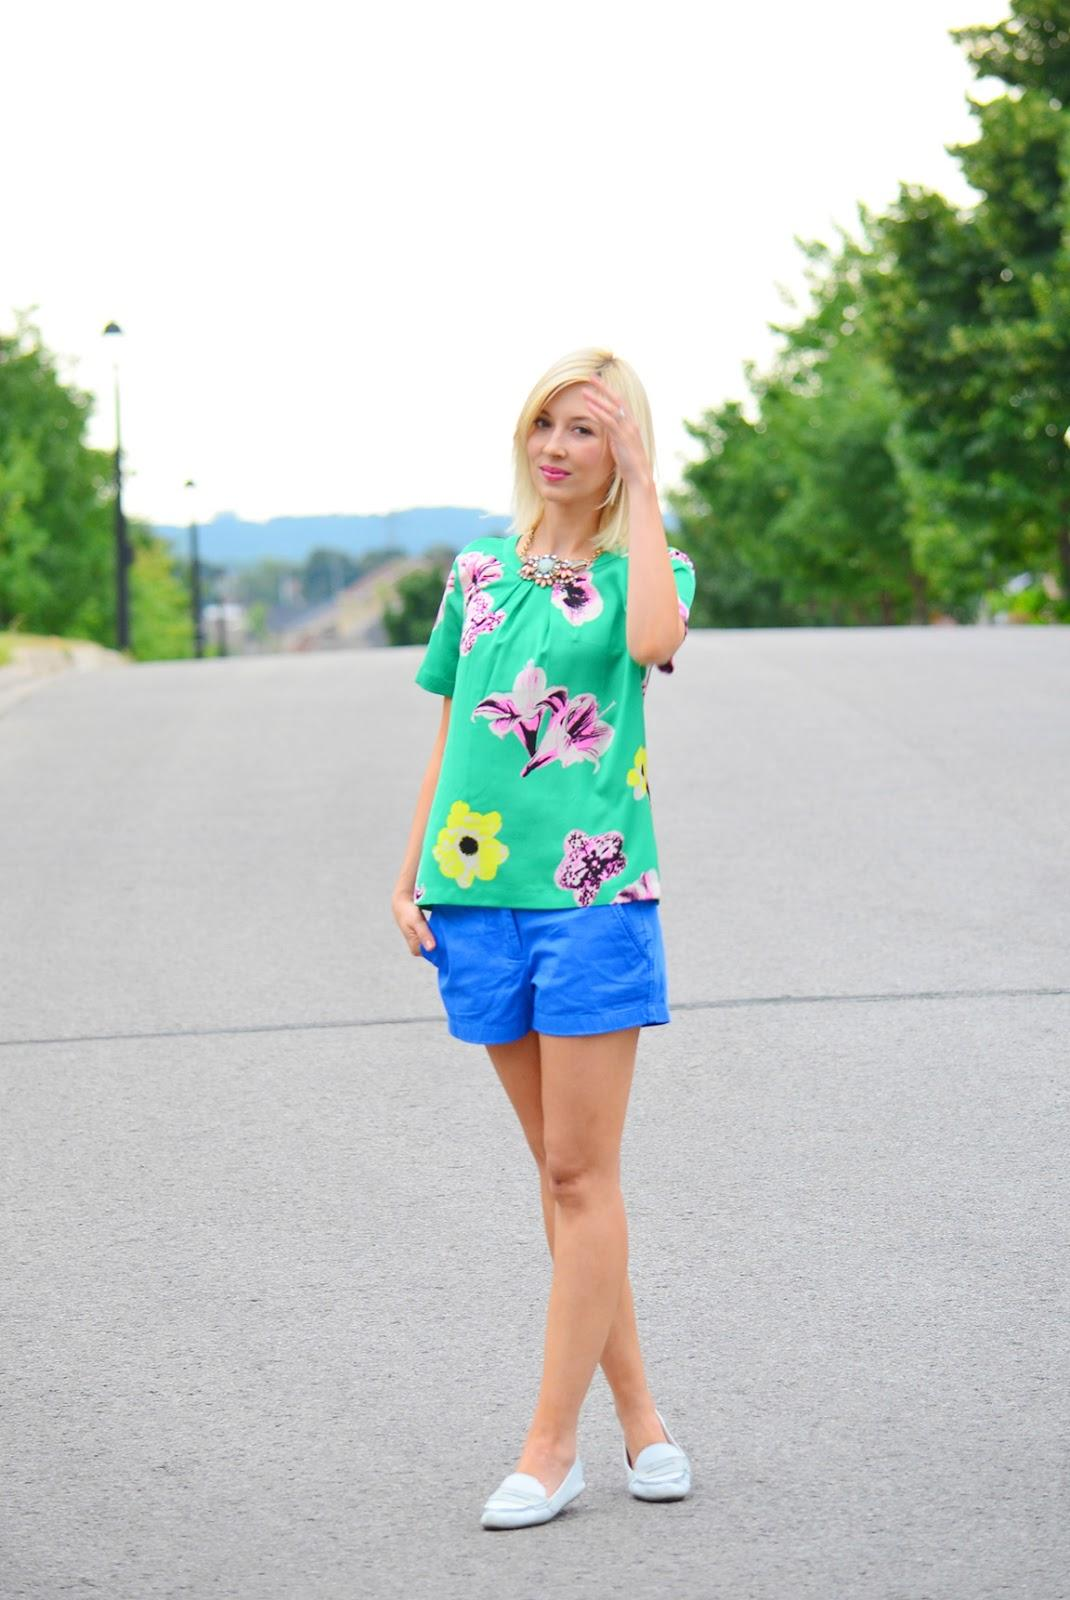 Style, OOTD, floral print, summer style, preppy style, preppy, J. Crew, J.Crew style, Chino Shorts, shorts, Gap, floral top style, floral print top